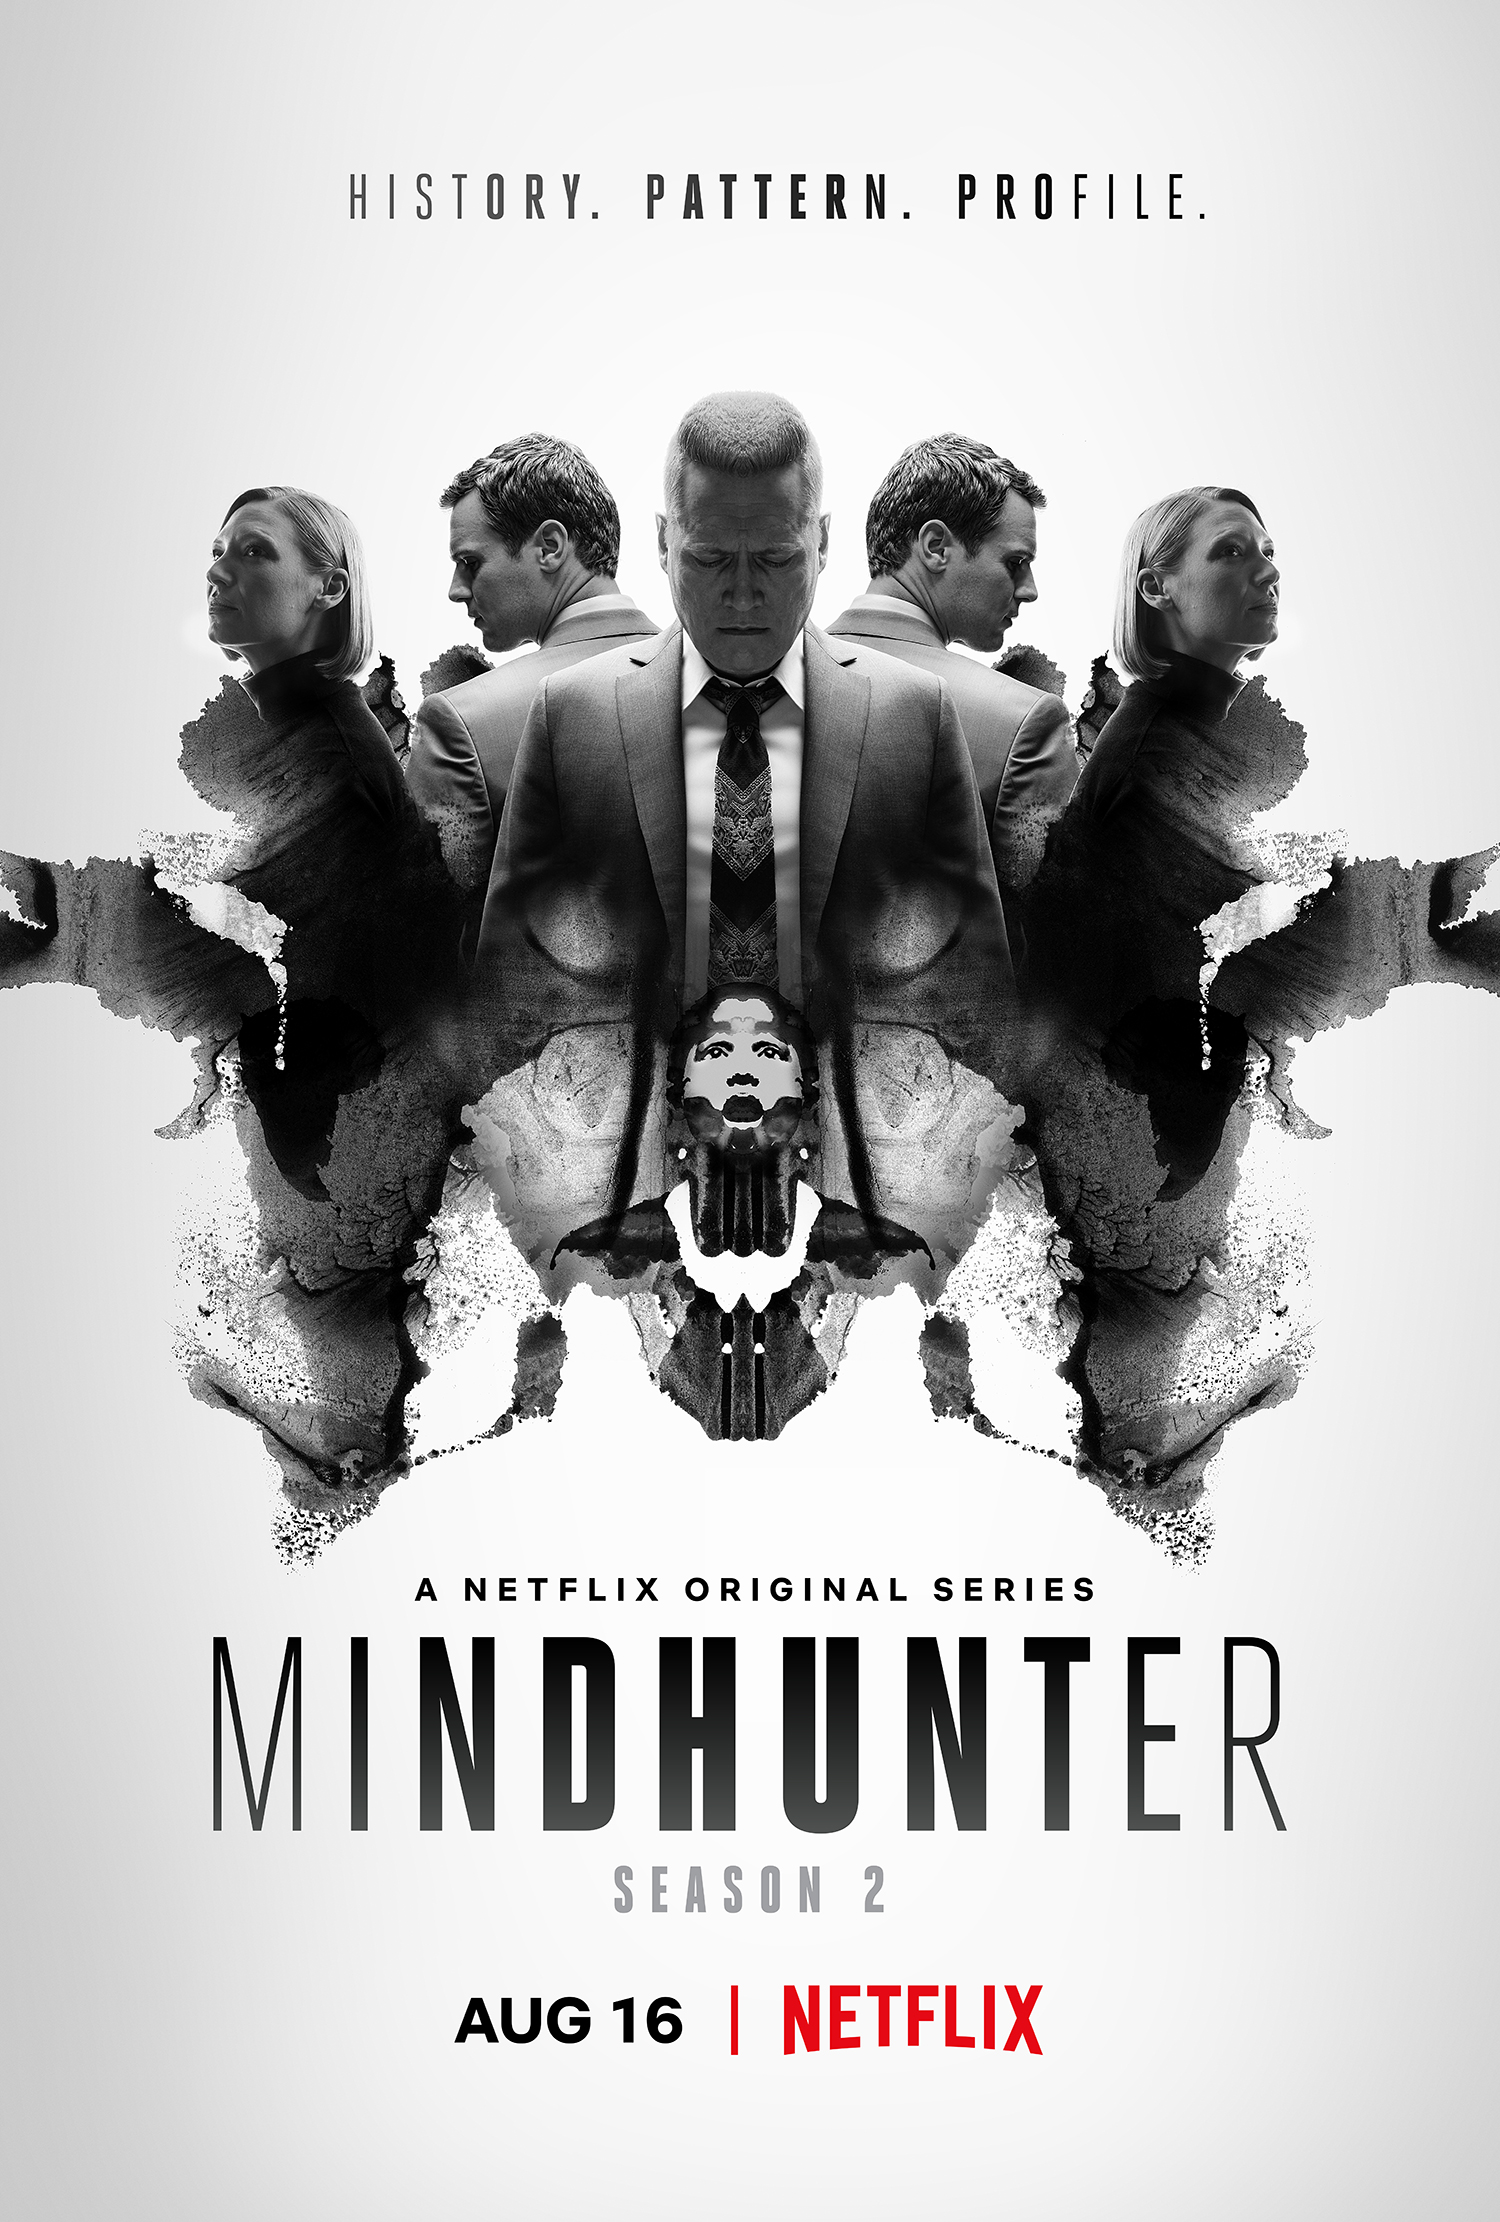 Contest: Be the First to See MINDHUNTER Season 2